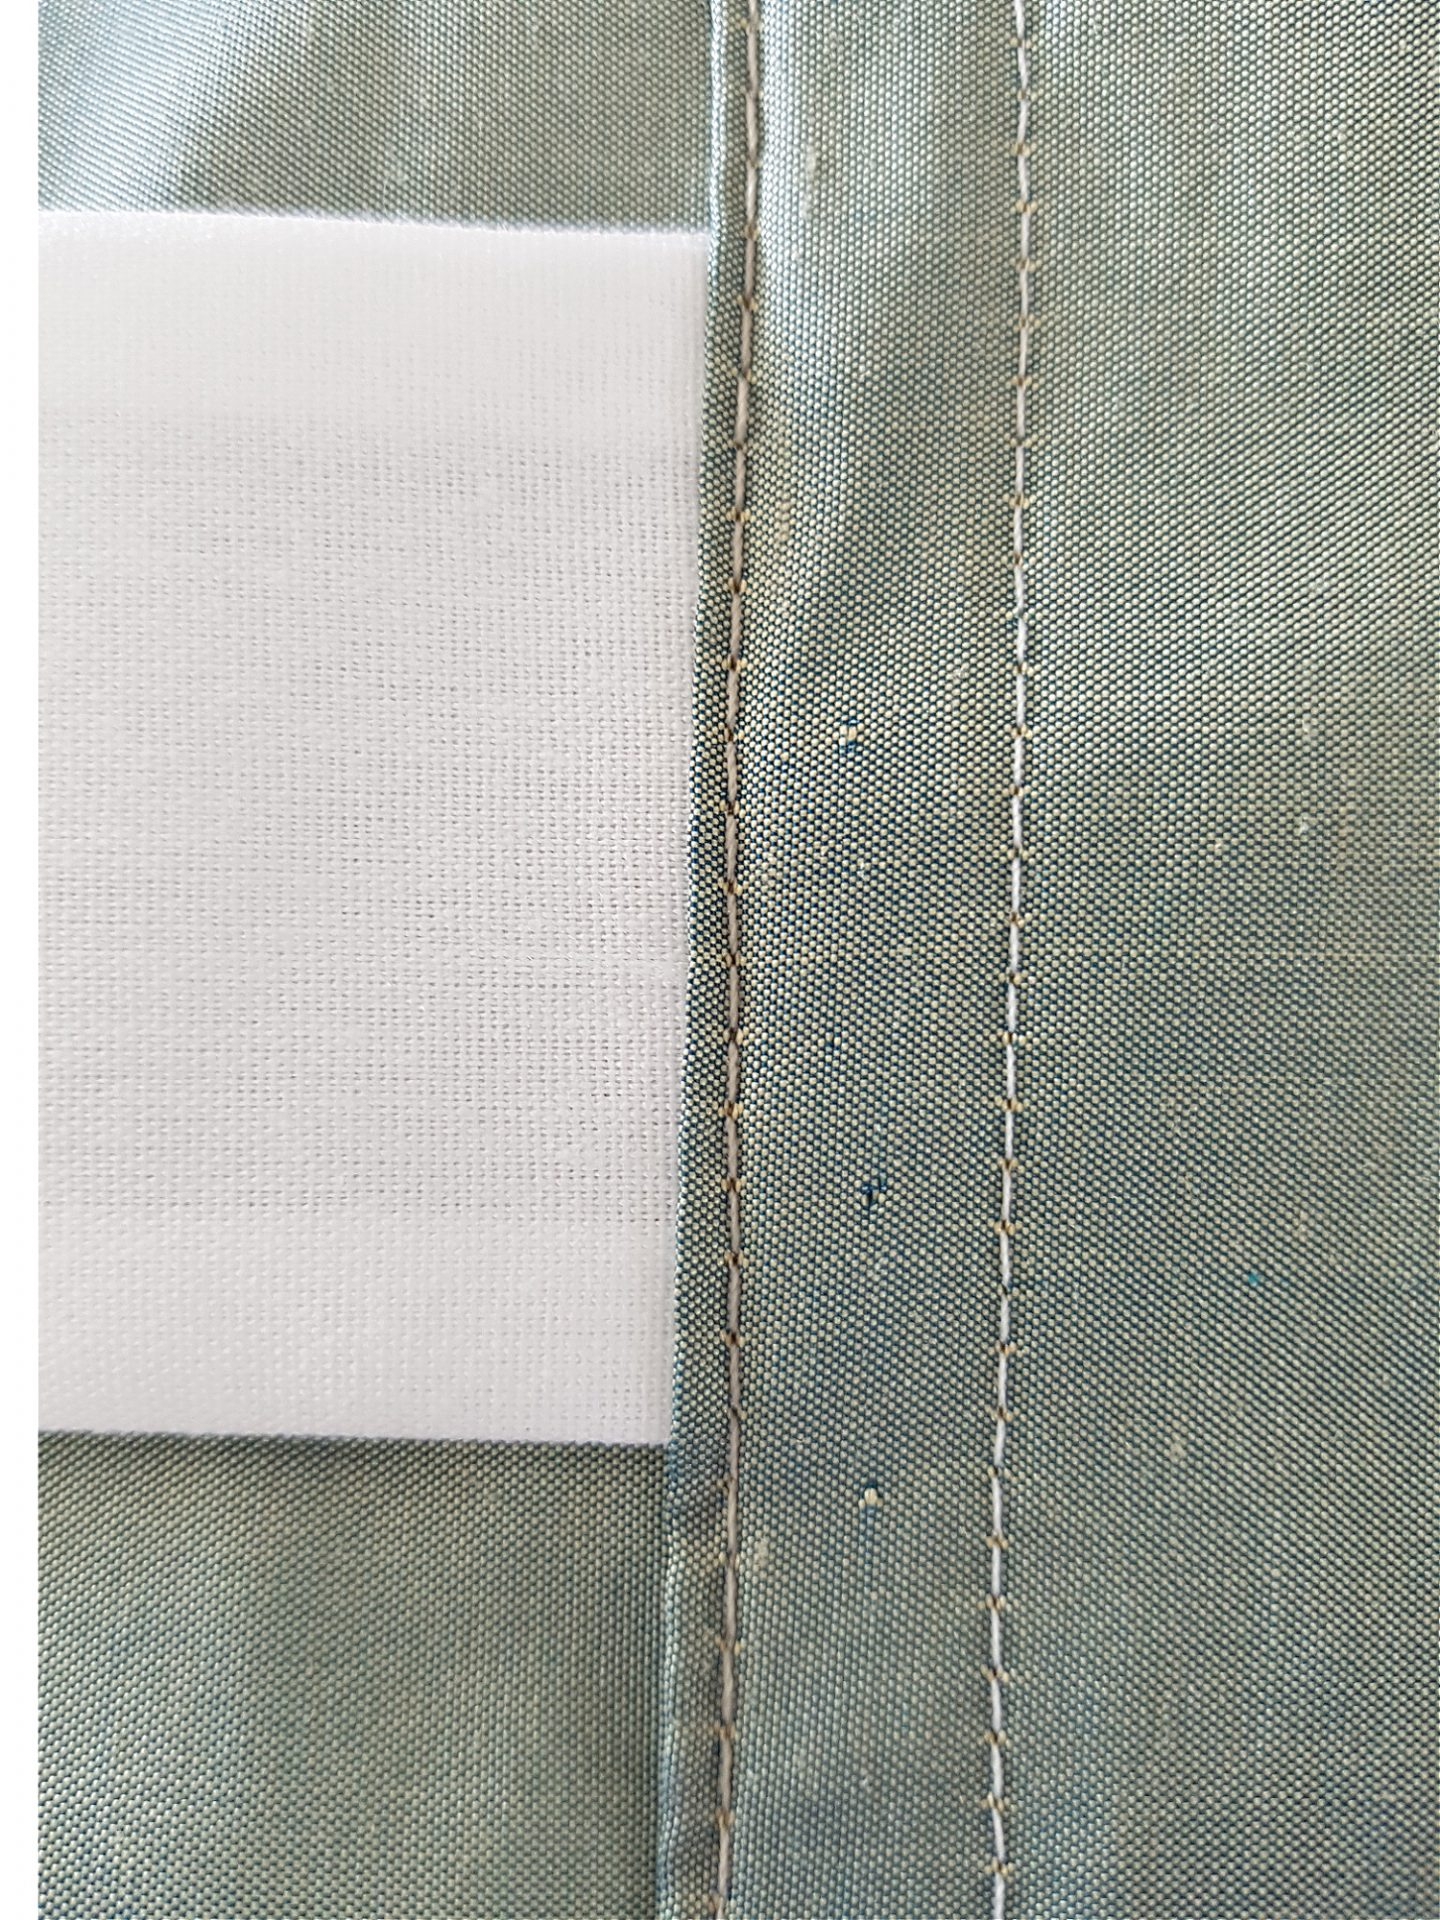 sewing back tabs